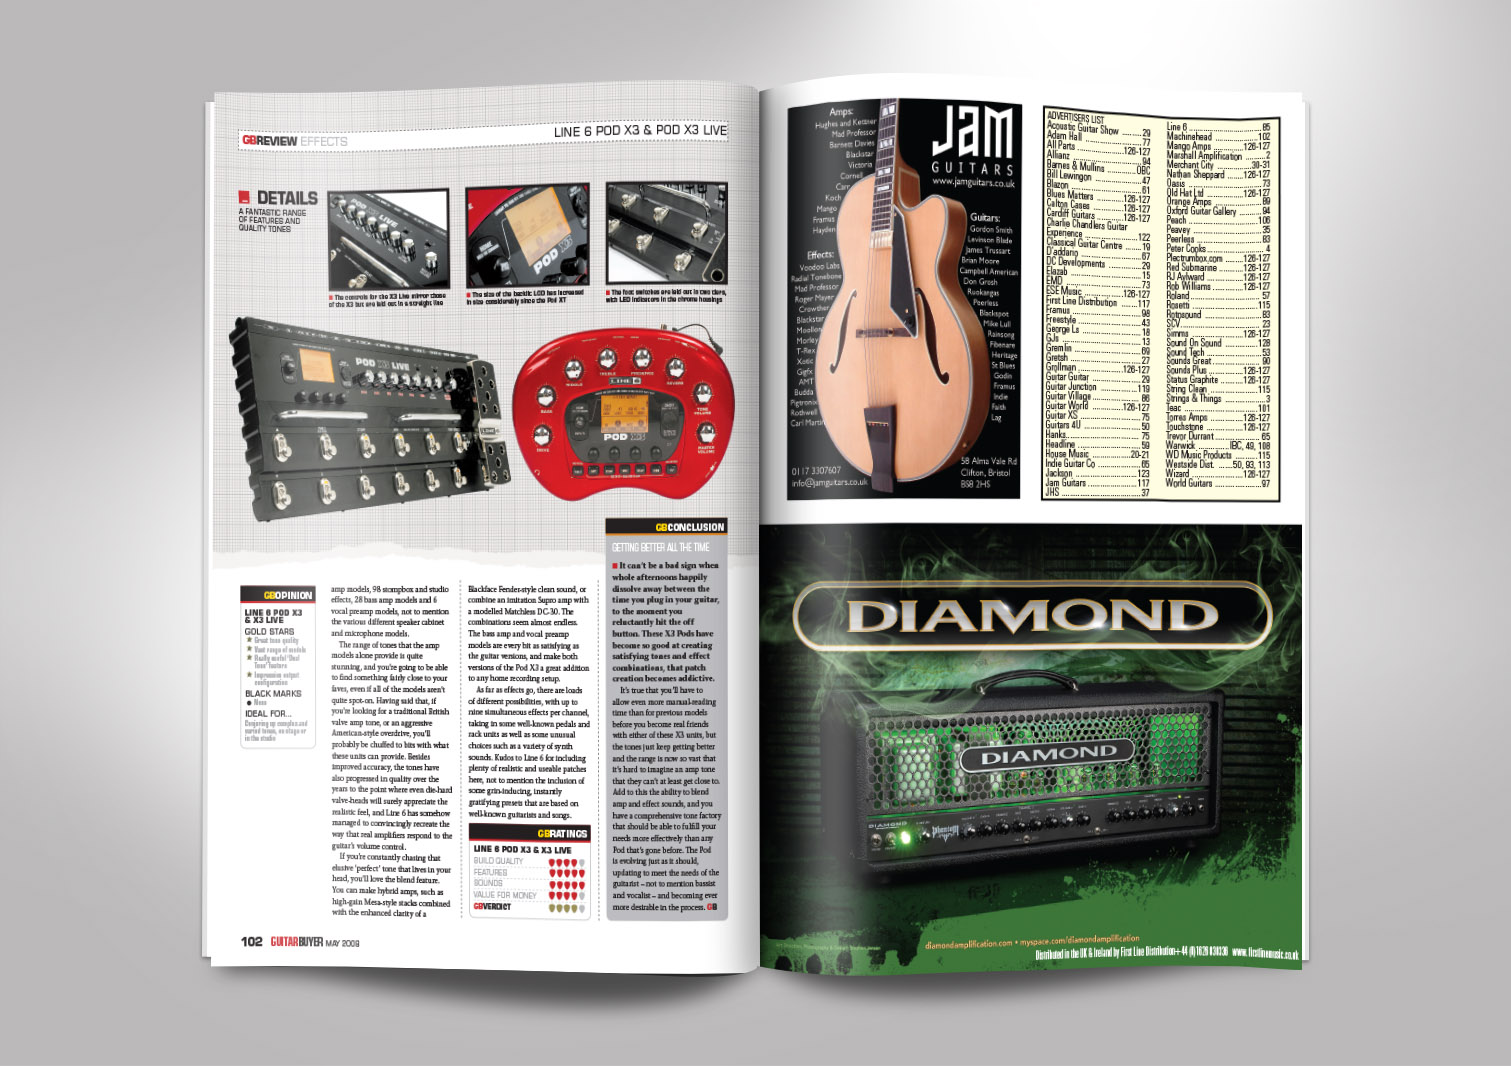 Guitar Buyer Magazine Inside Pages 5 and 6